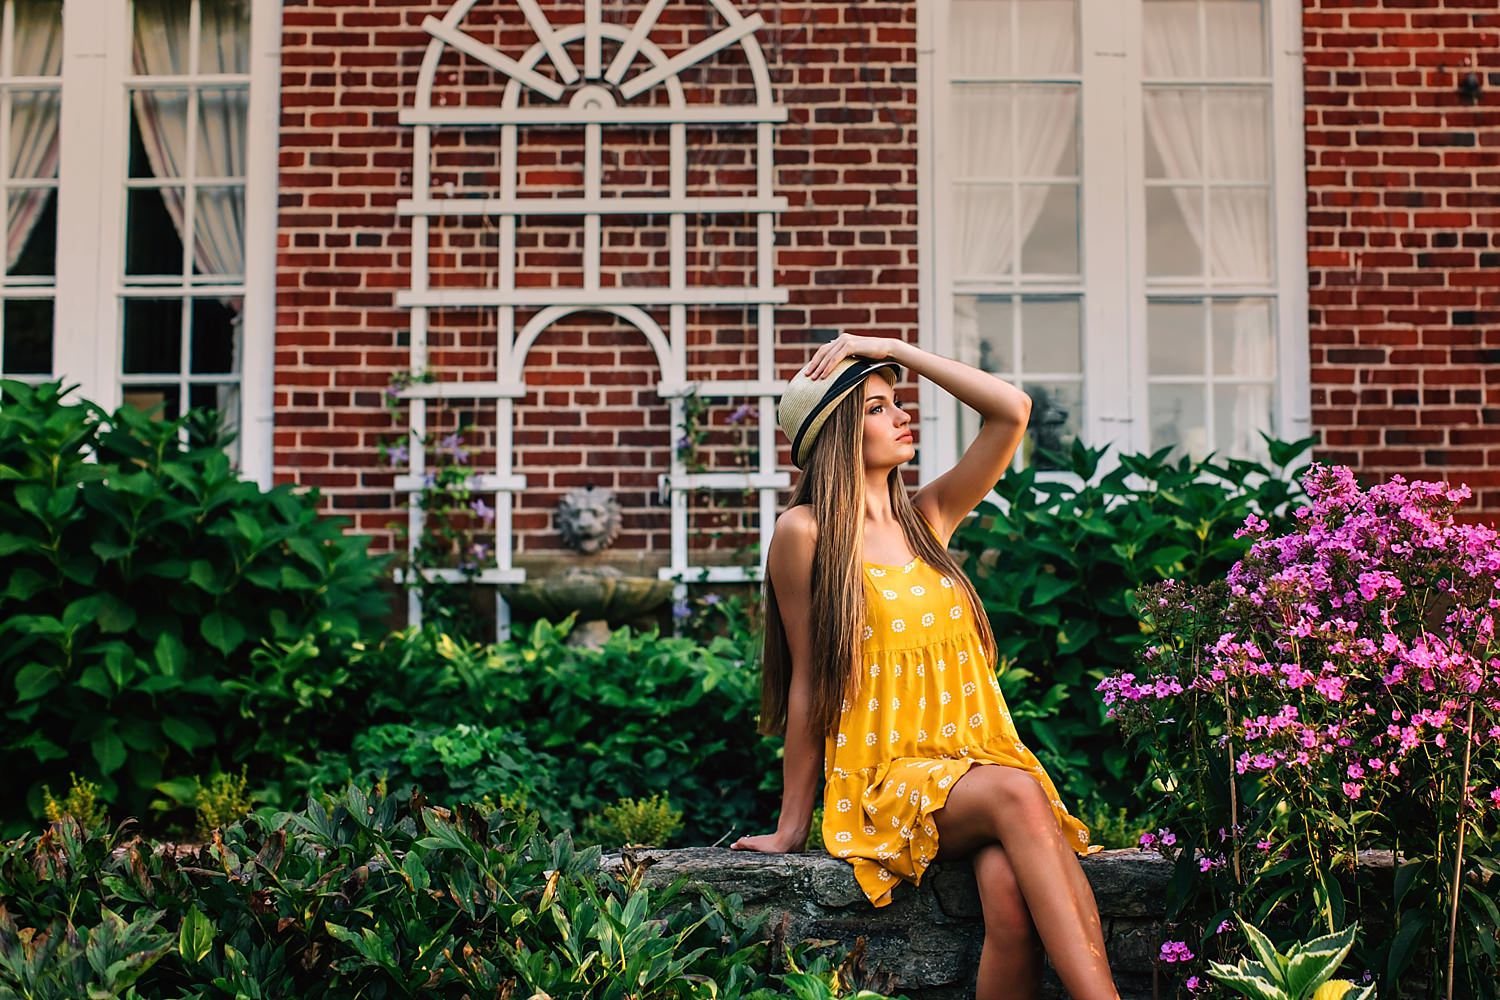 girl posing with hat in garden in sun for senior portraits